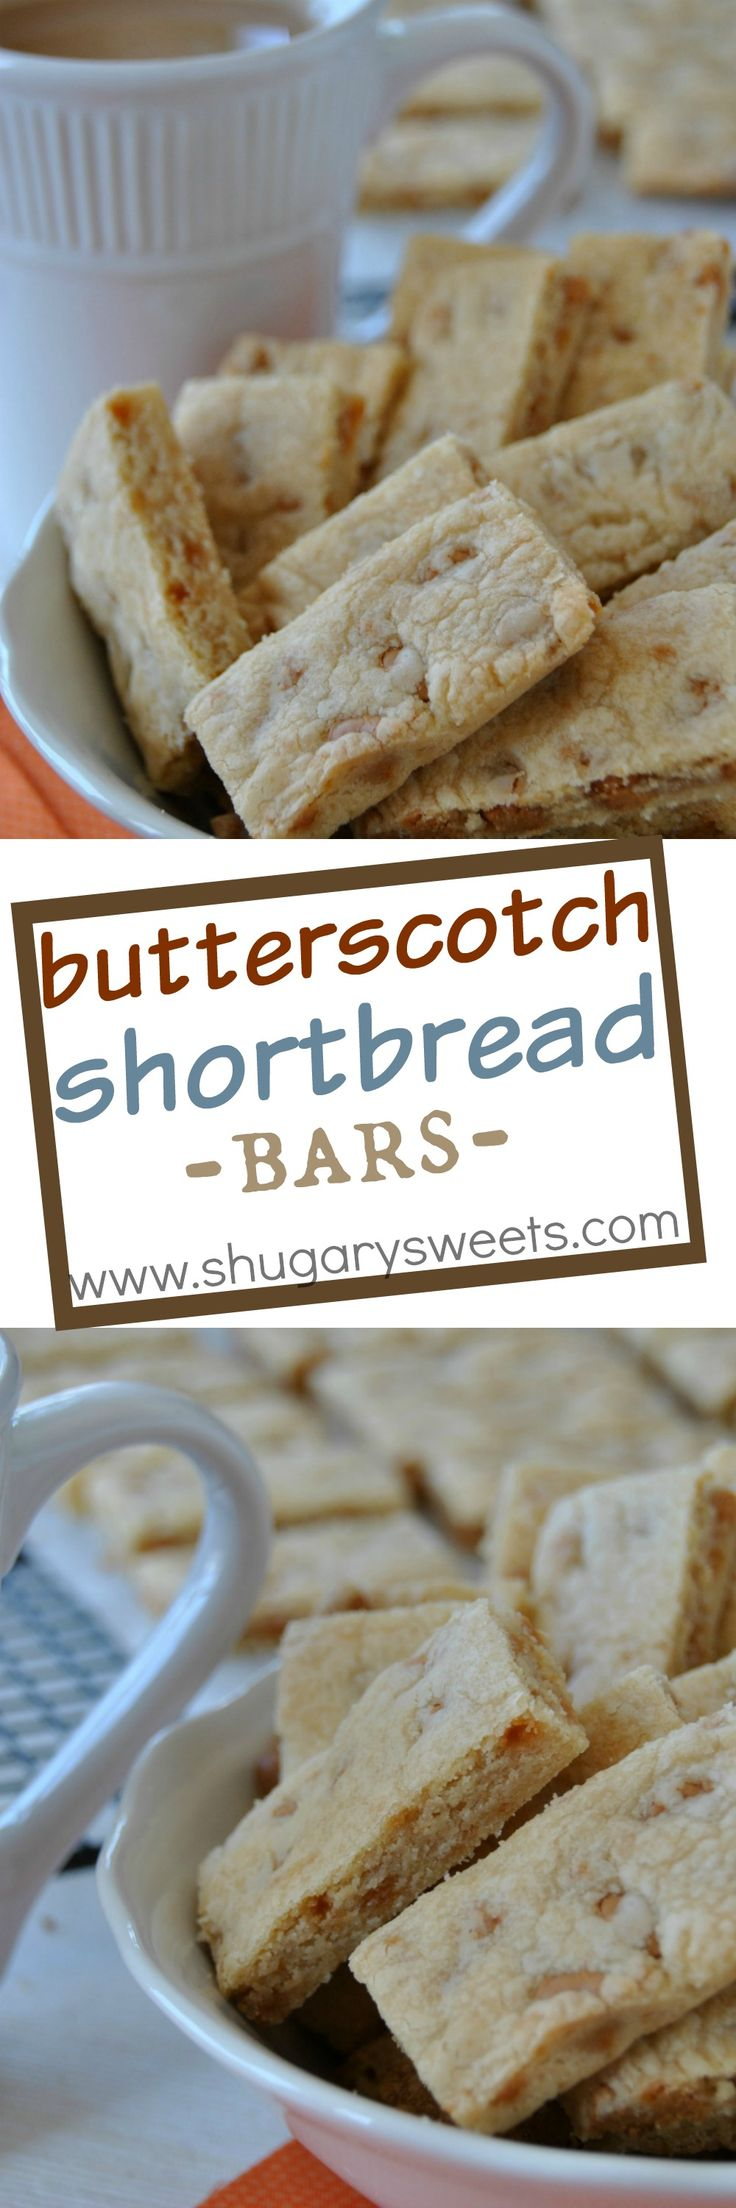 Butterscotch Shortbread Bars: browned butter and butterscotch chips give these…